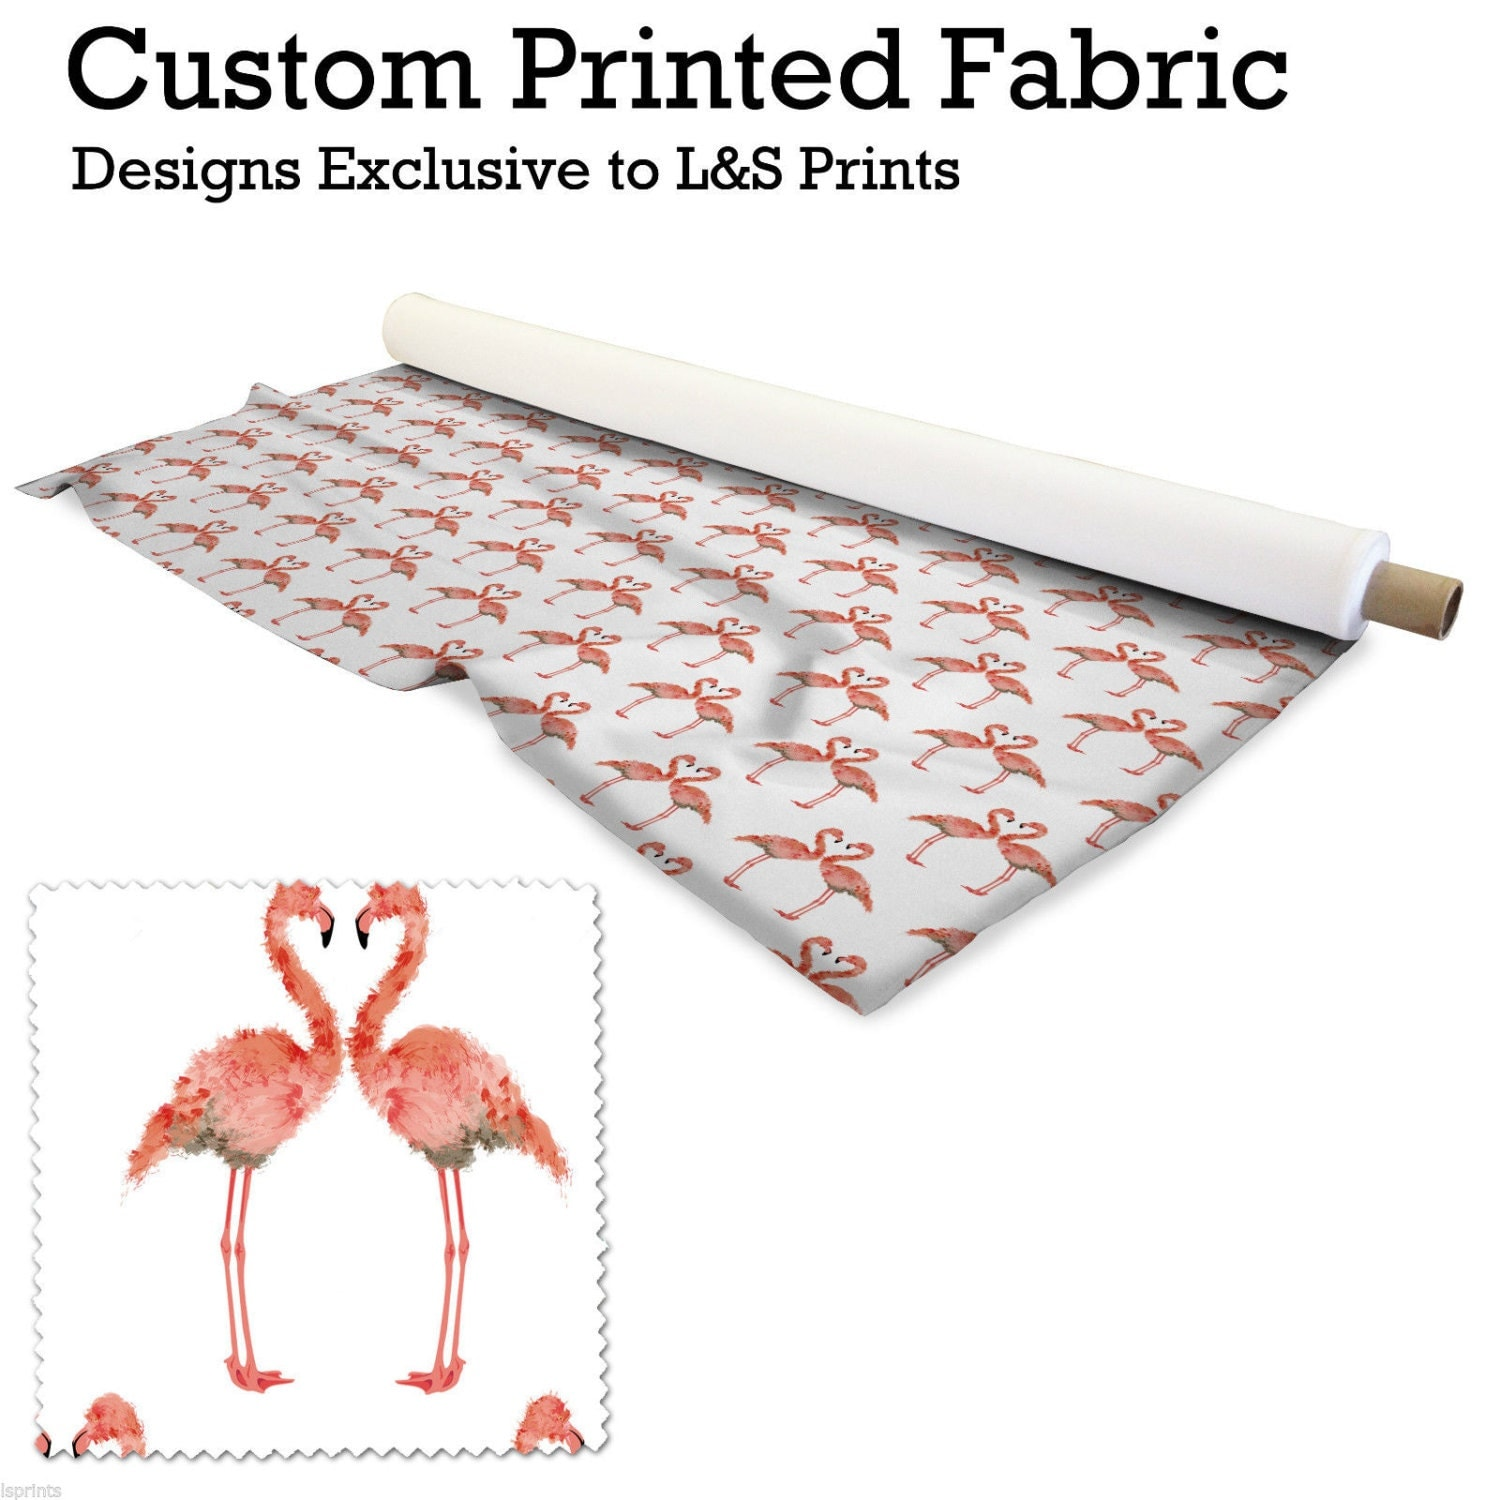 flamingo bird fabric 2 way stretch lycra spandex satin chiffon jersey voile. Black Bedroom Furniture Sets. Home Design Ideas